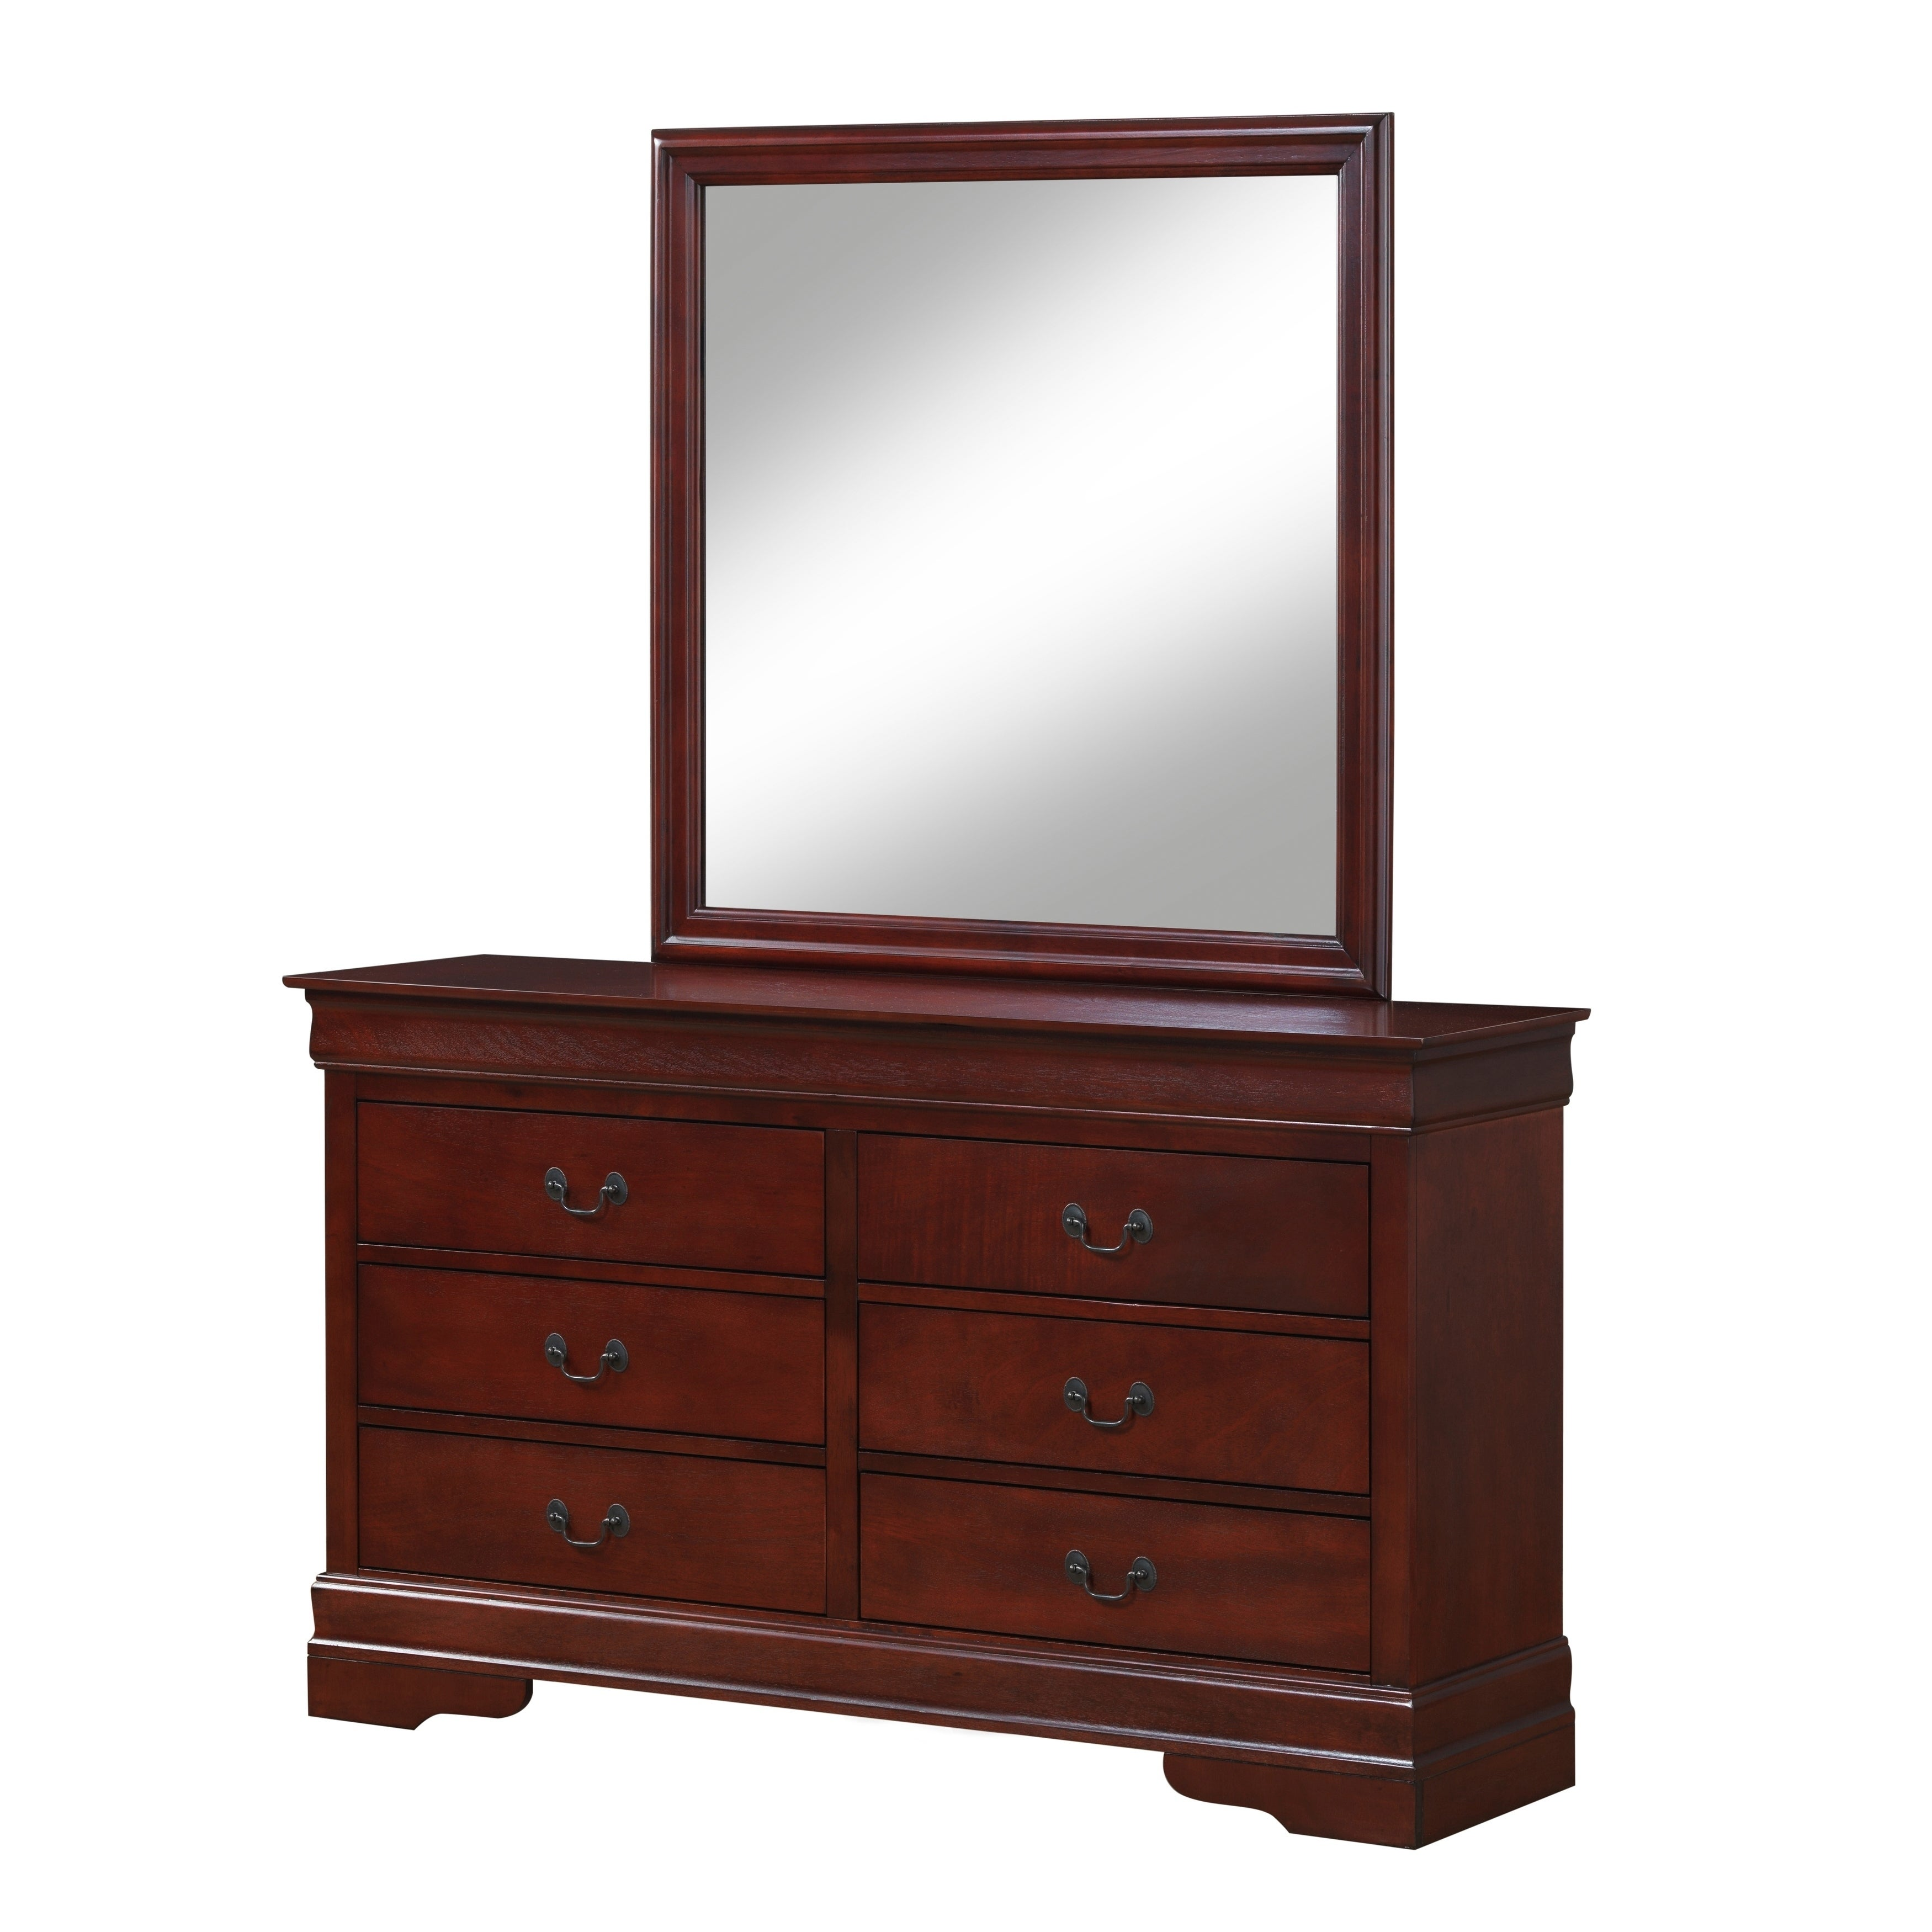 dresser reviews co balamore with mirror ca home and set furniture piece darby wayfair vanity pdp